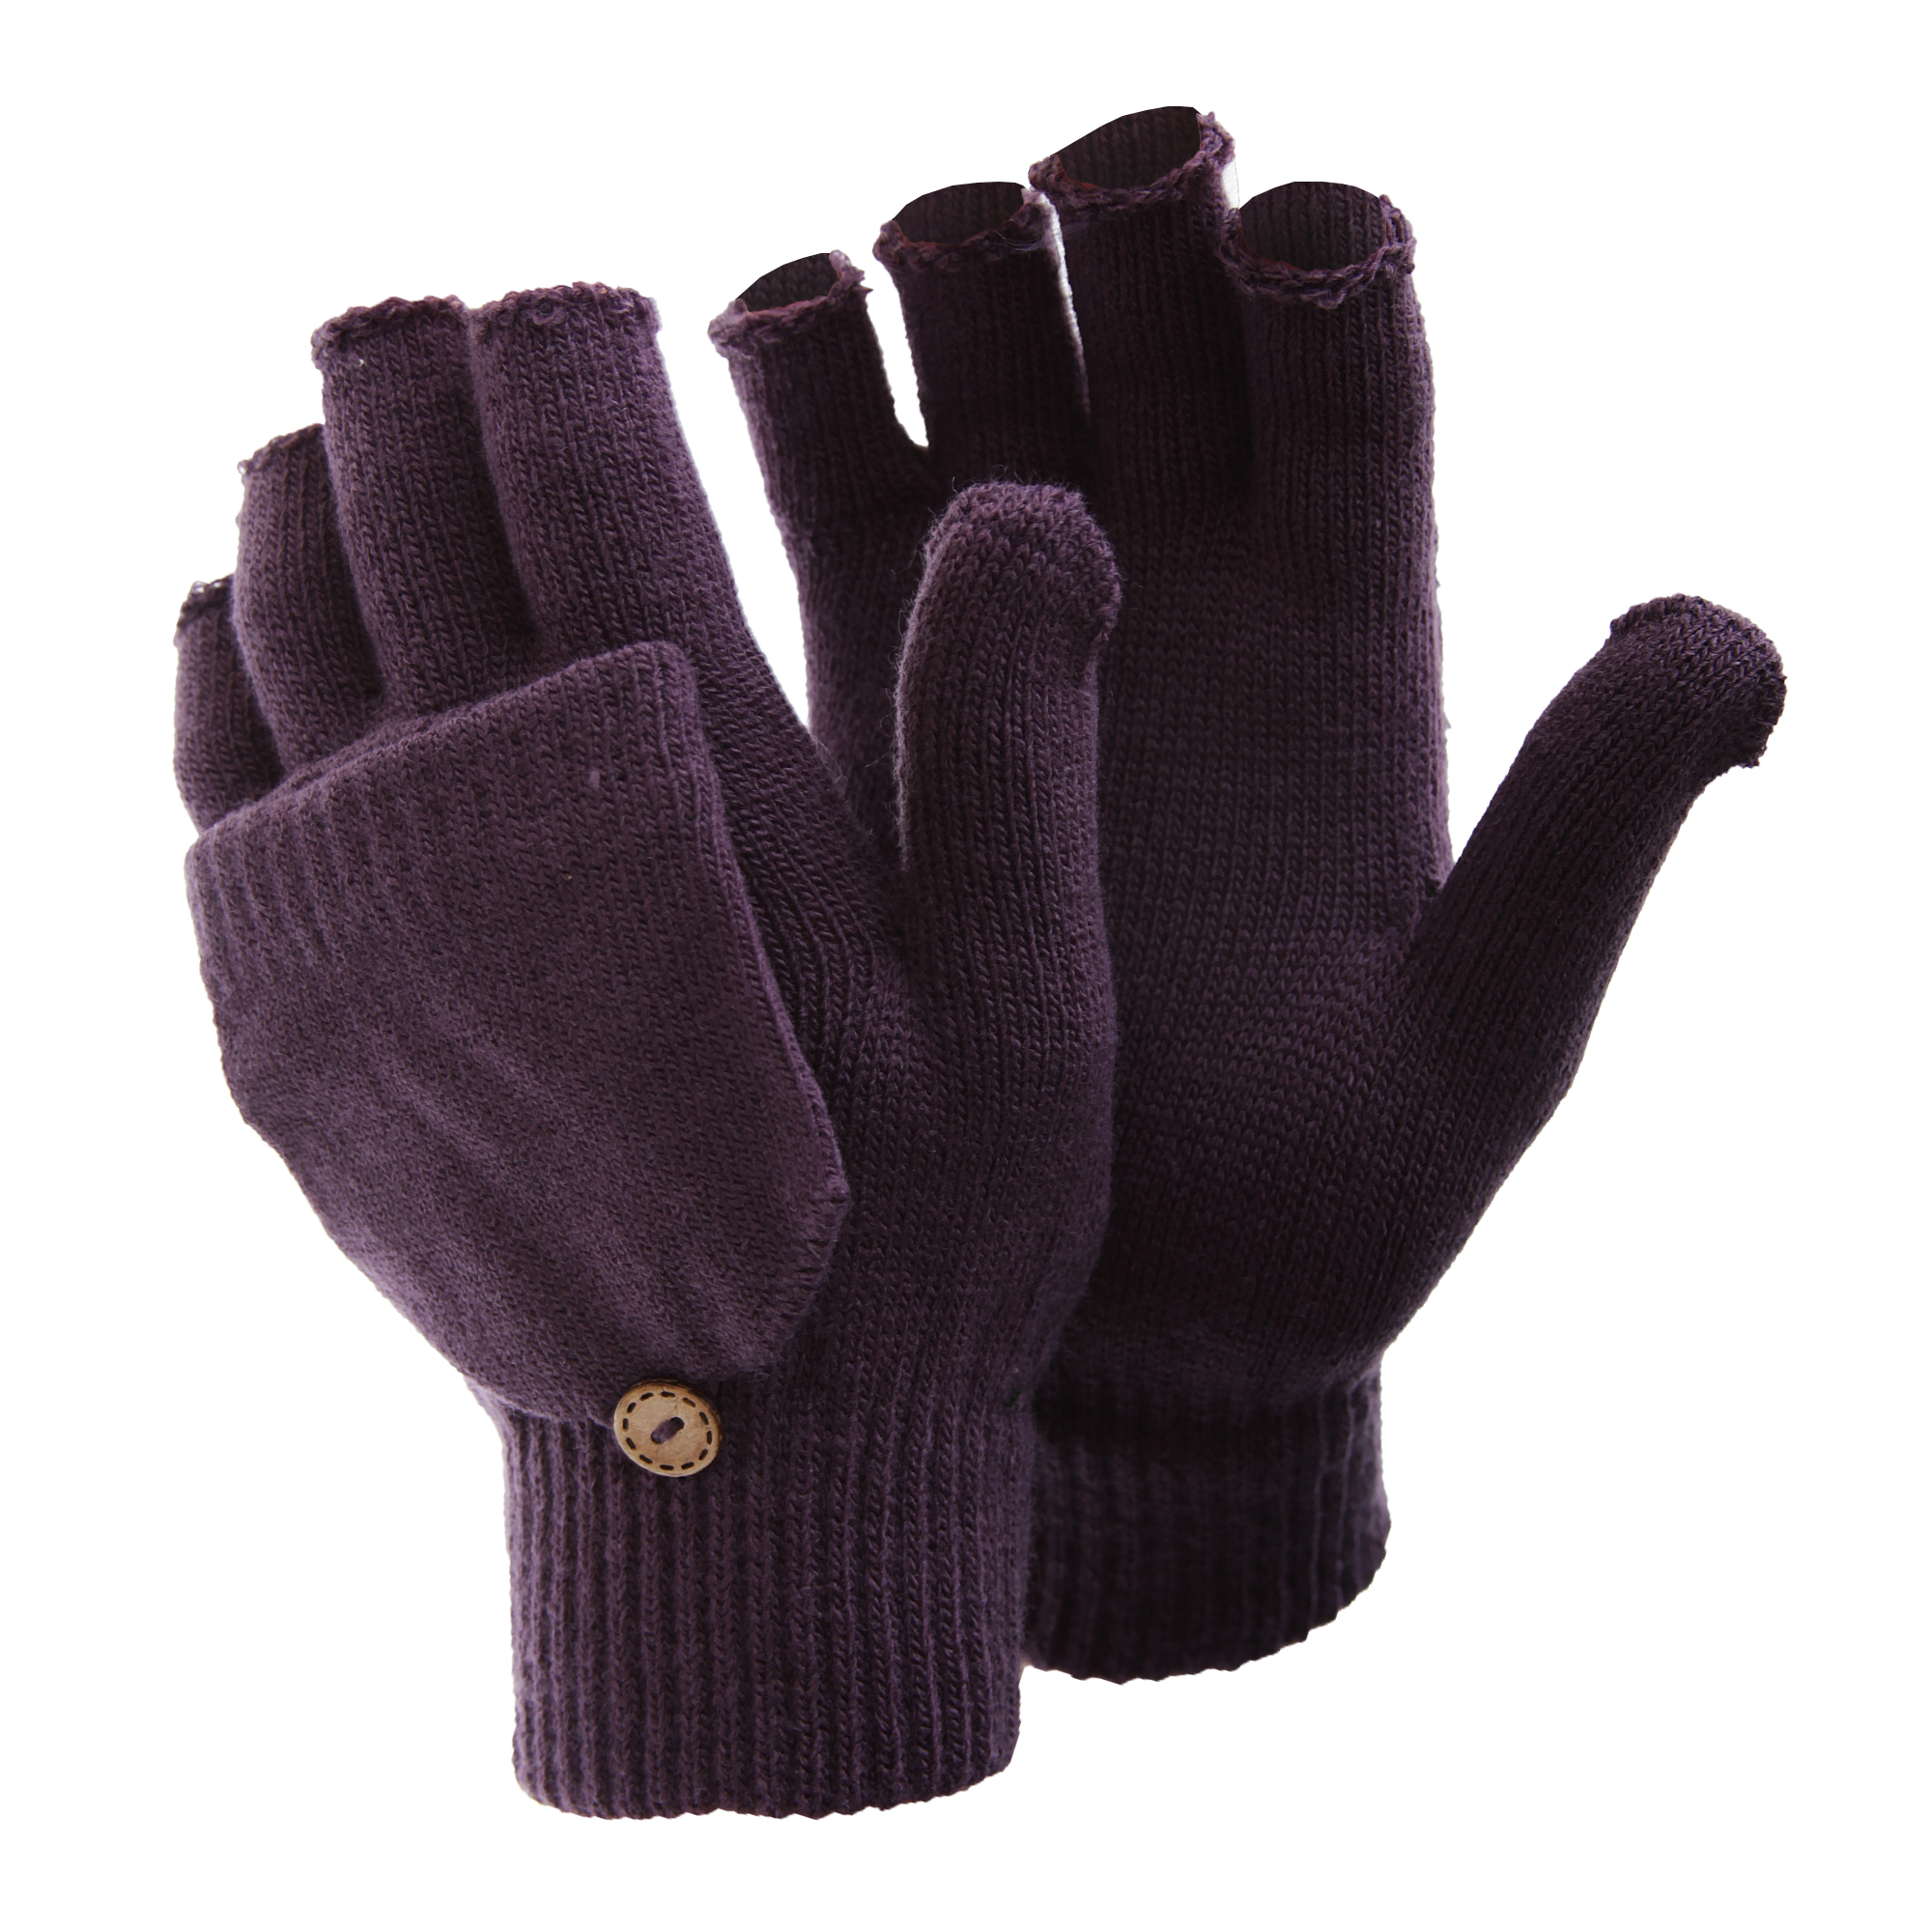 FLOSO Womens /Ladies Winter Warm Casual Capped Fingerless